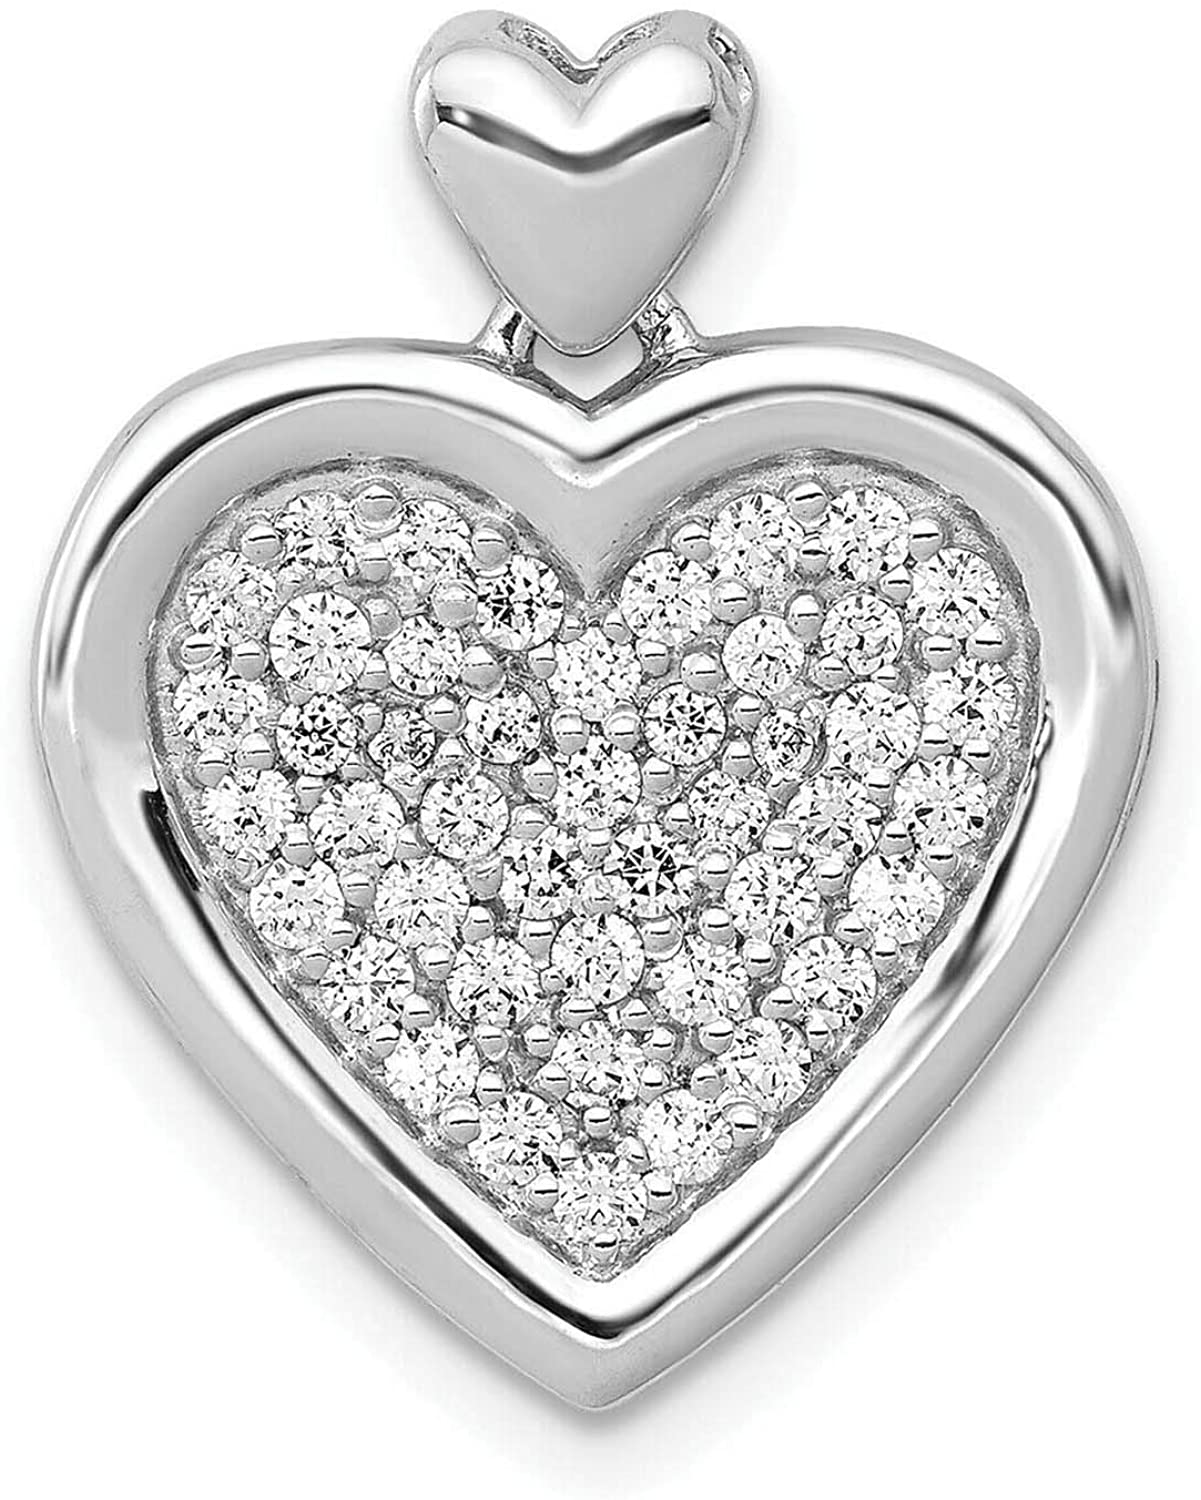 IRA 925 Sterling Silver Round Cut Simulated Diamond Engagement Wedding Heart Pendant Necklace for Womens Free 18